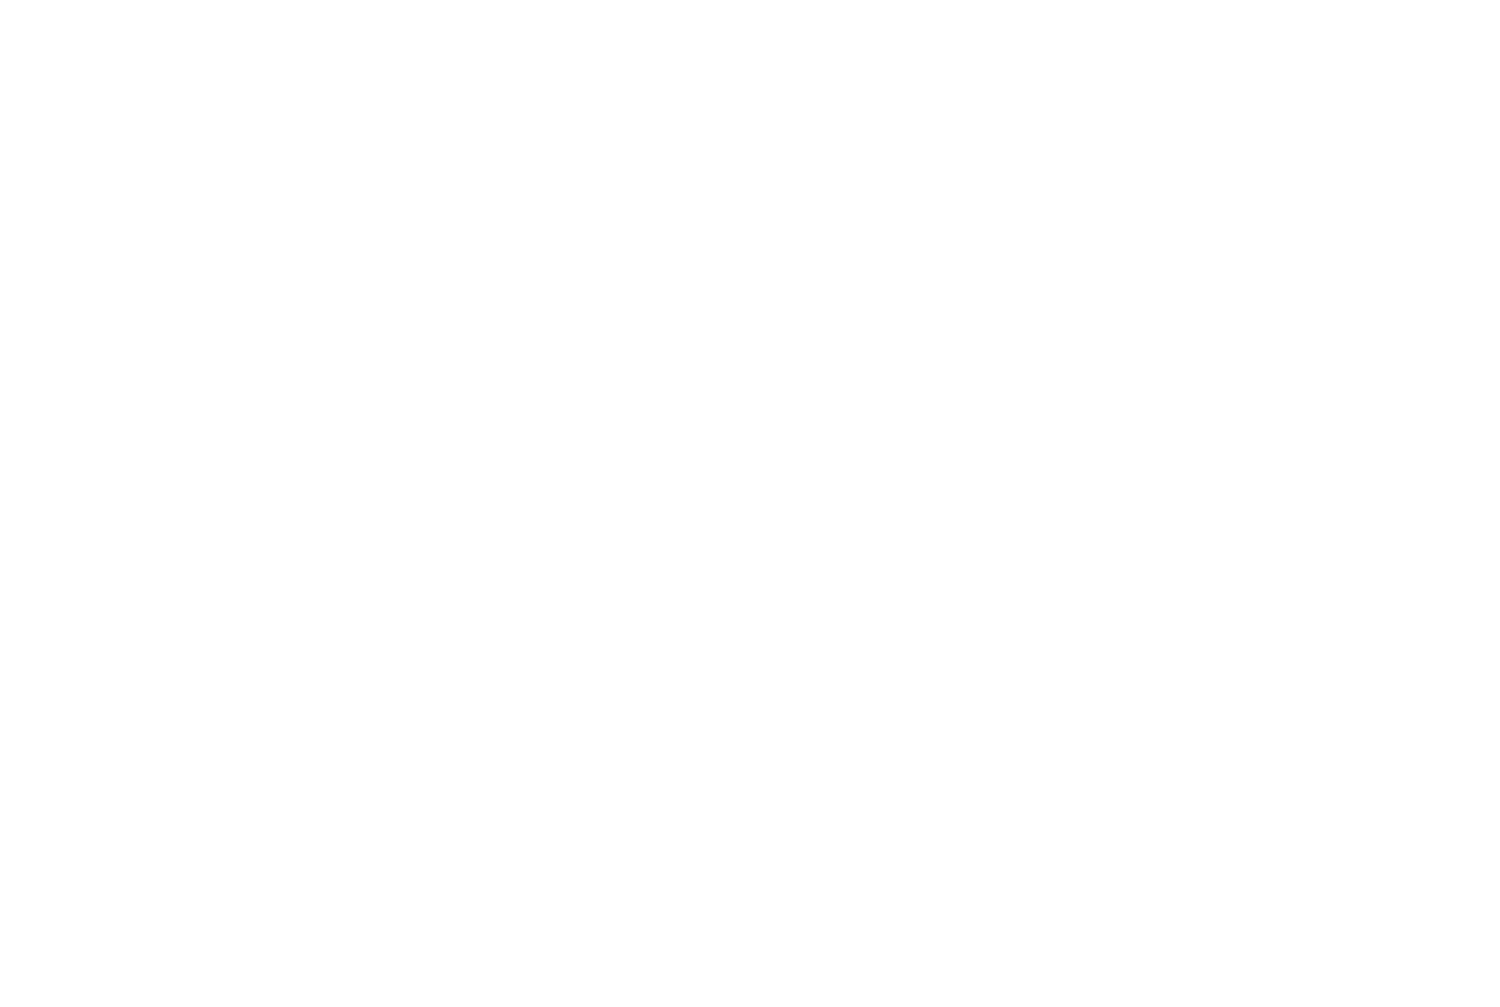 rogowoodworking.net